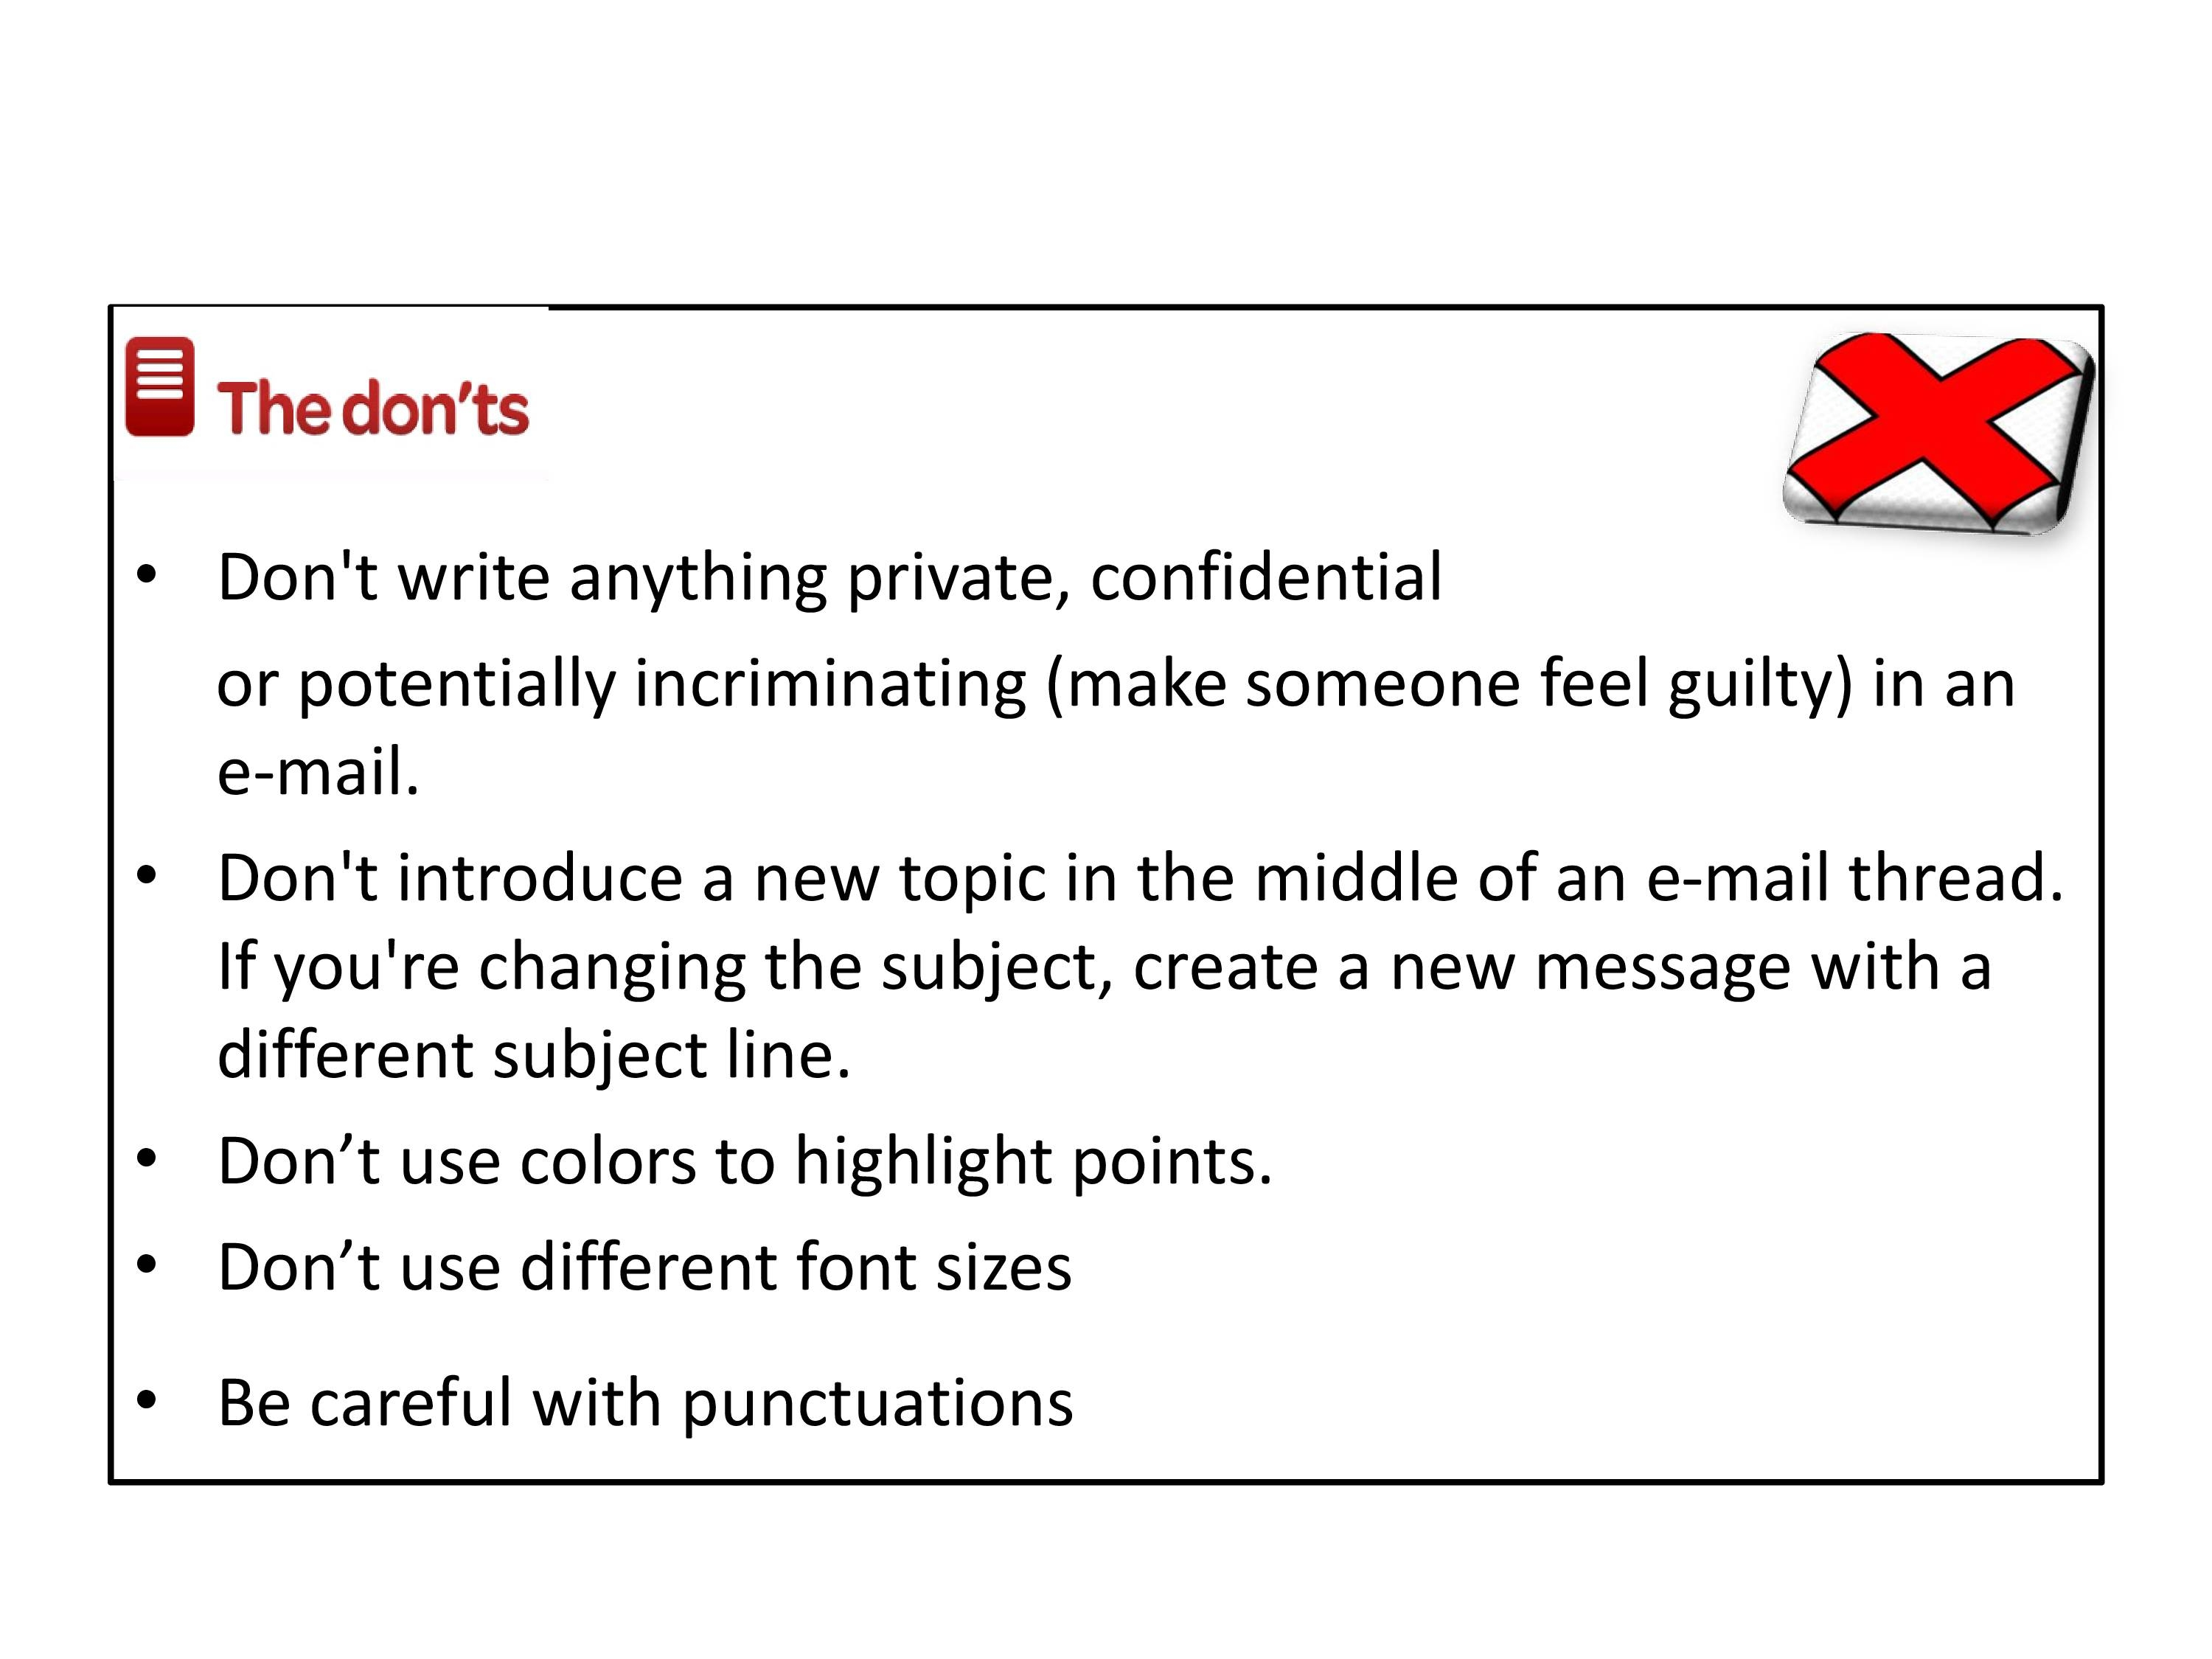 email etiquette powerpoint slides presentation on email writing in hd